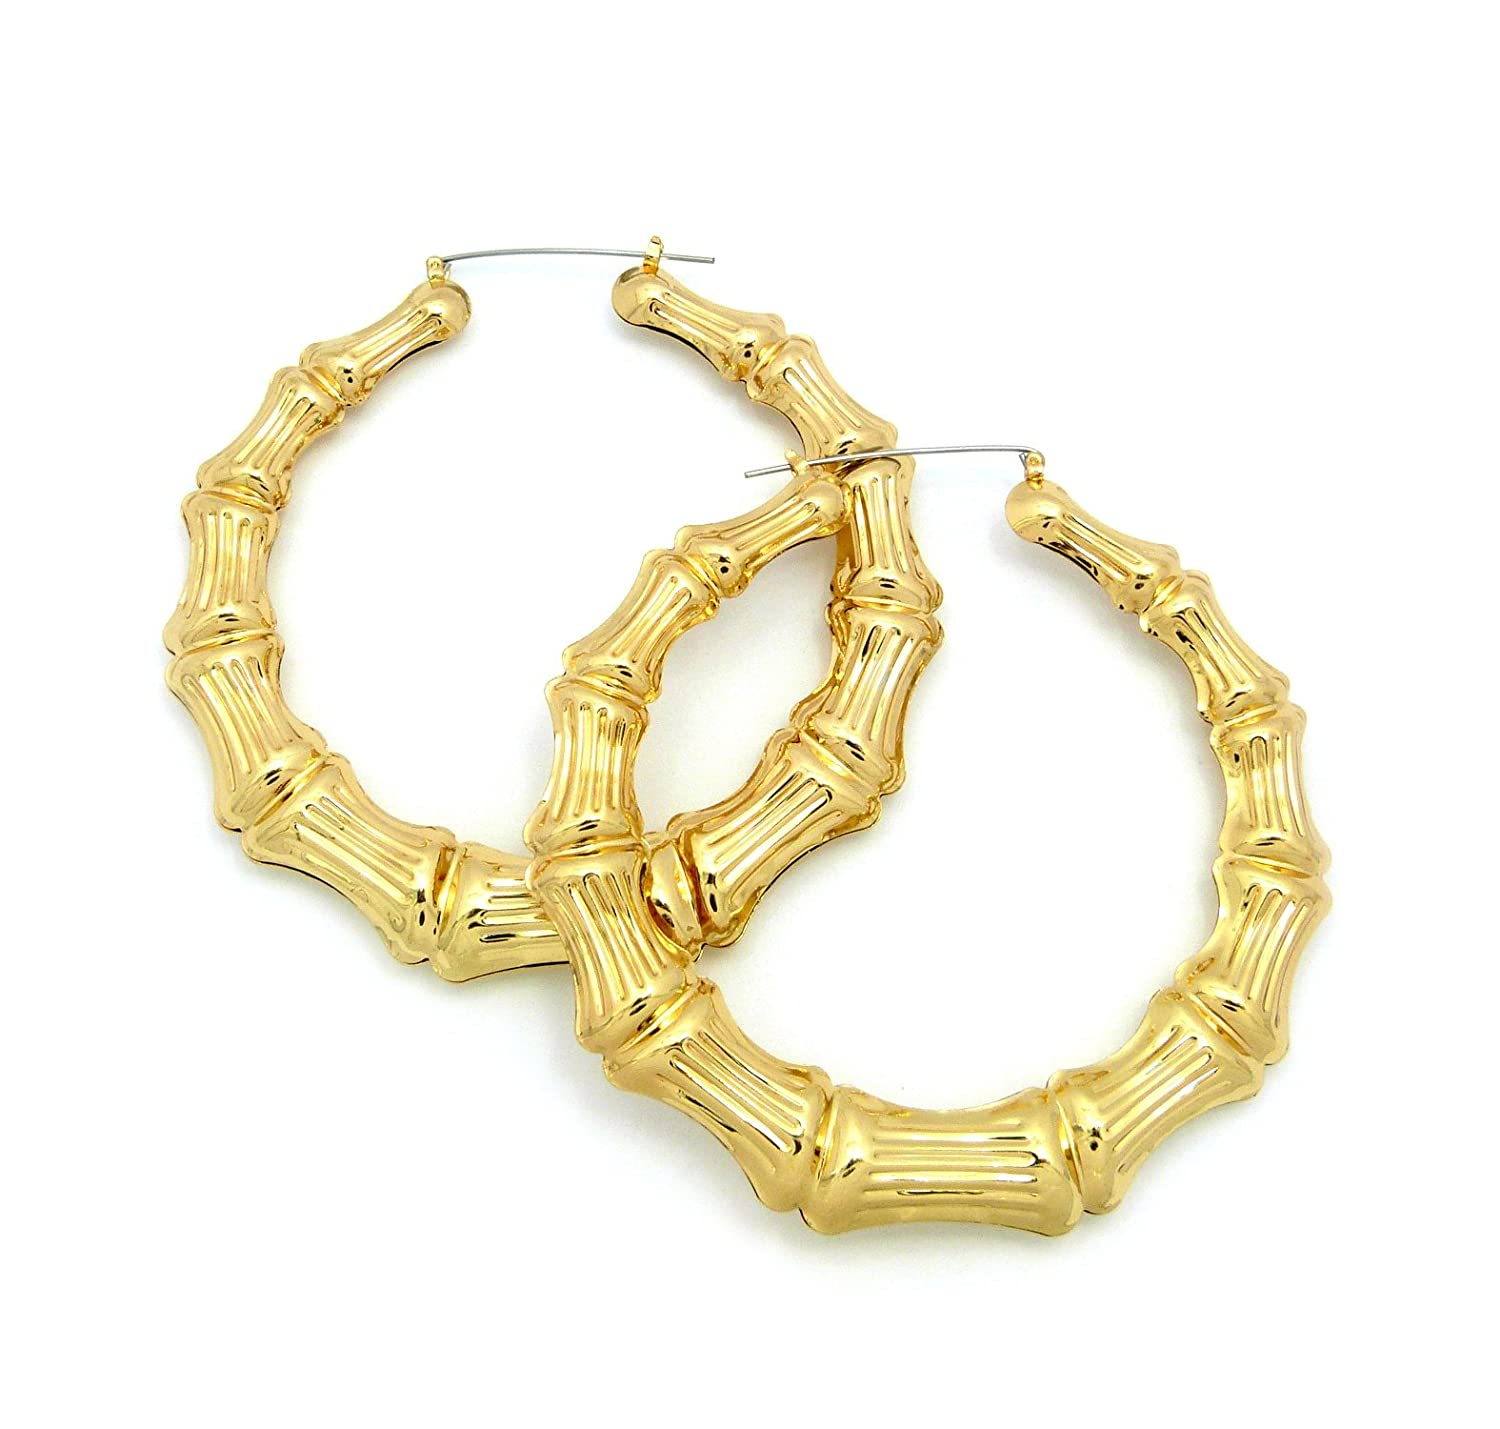 Amazon.com: Classic Bamboo Door Knocker Hoop Earrings, Gold-Tone ...